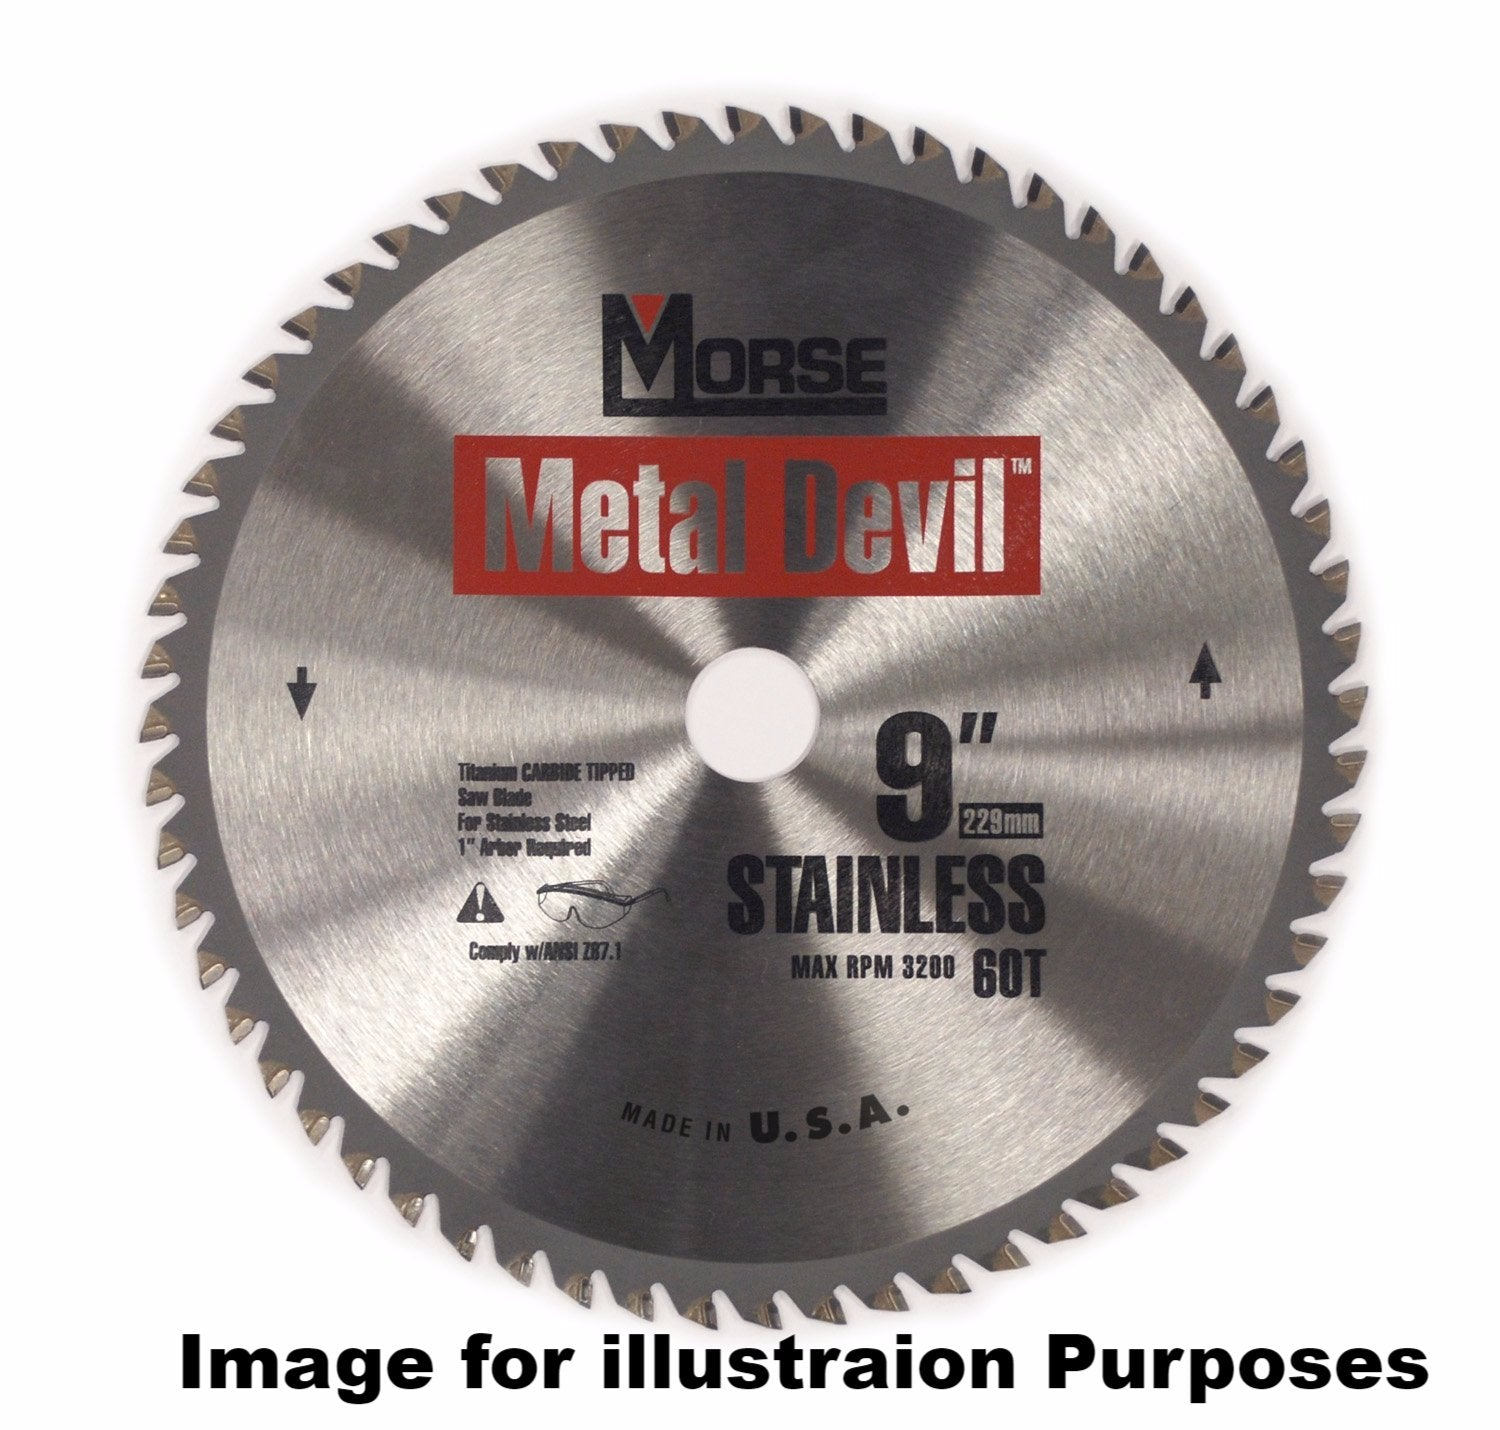 229mm (56 Tooth) Stainless Steel Cutting Metal Devil TCT Circular Saw Blade